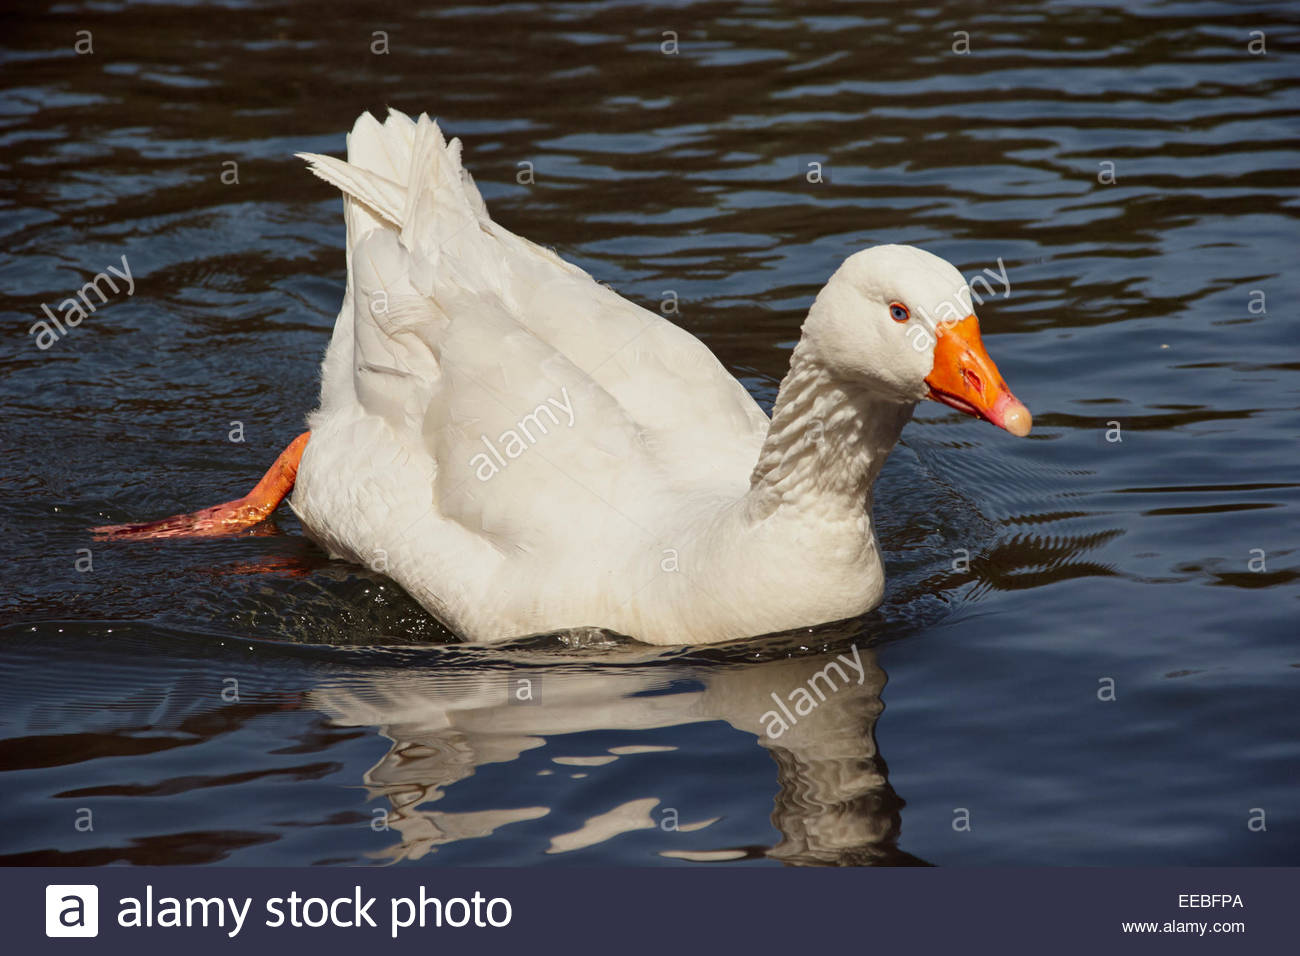 large white common domesticated aylesbury duck on the water with one leg out of water and a bright orange bill - Stock Image